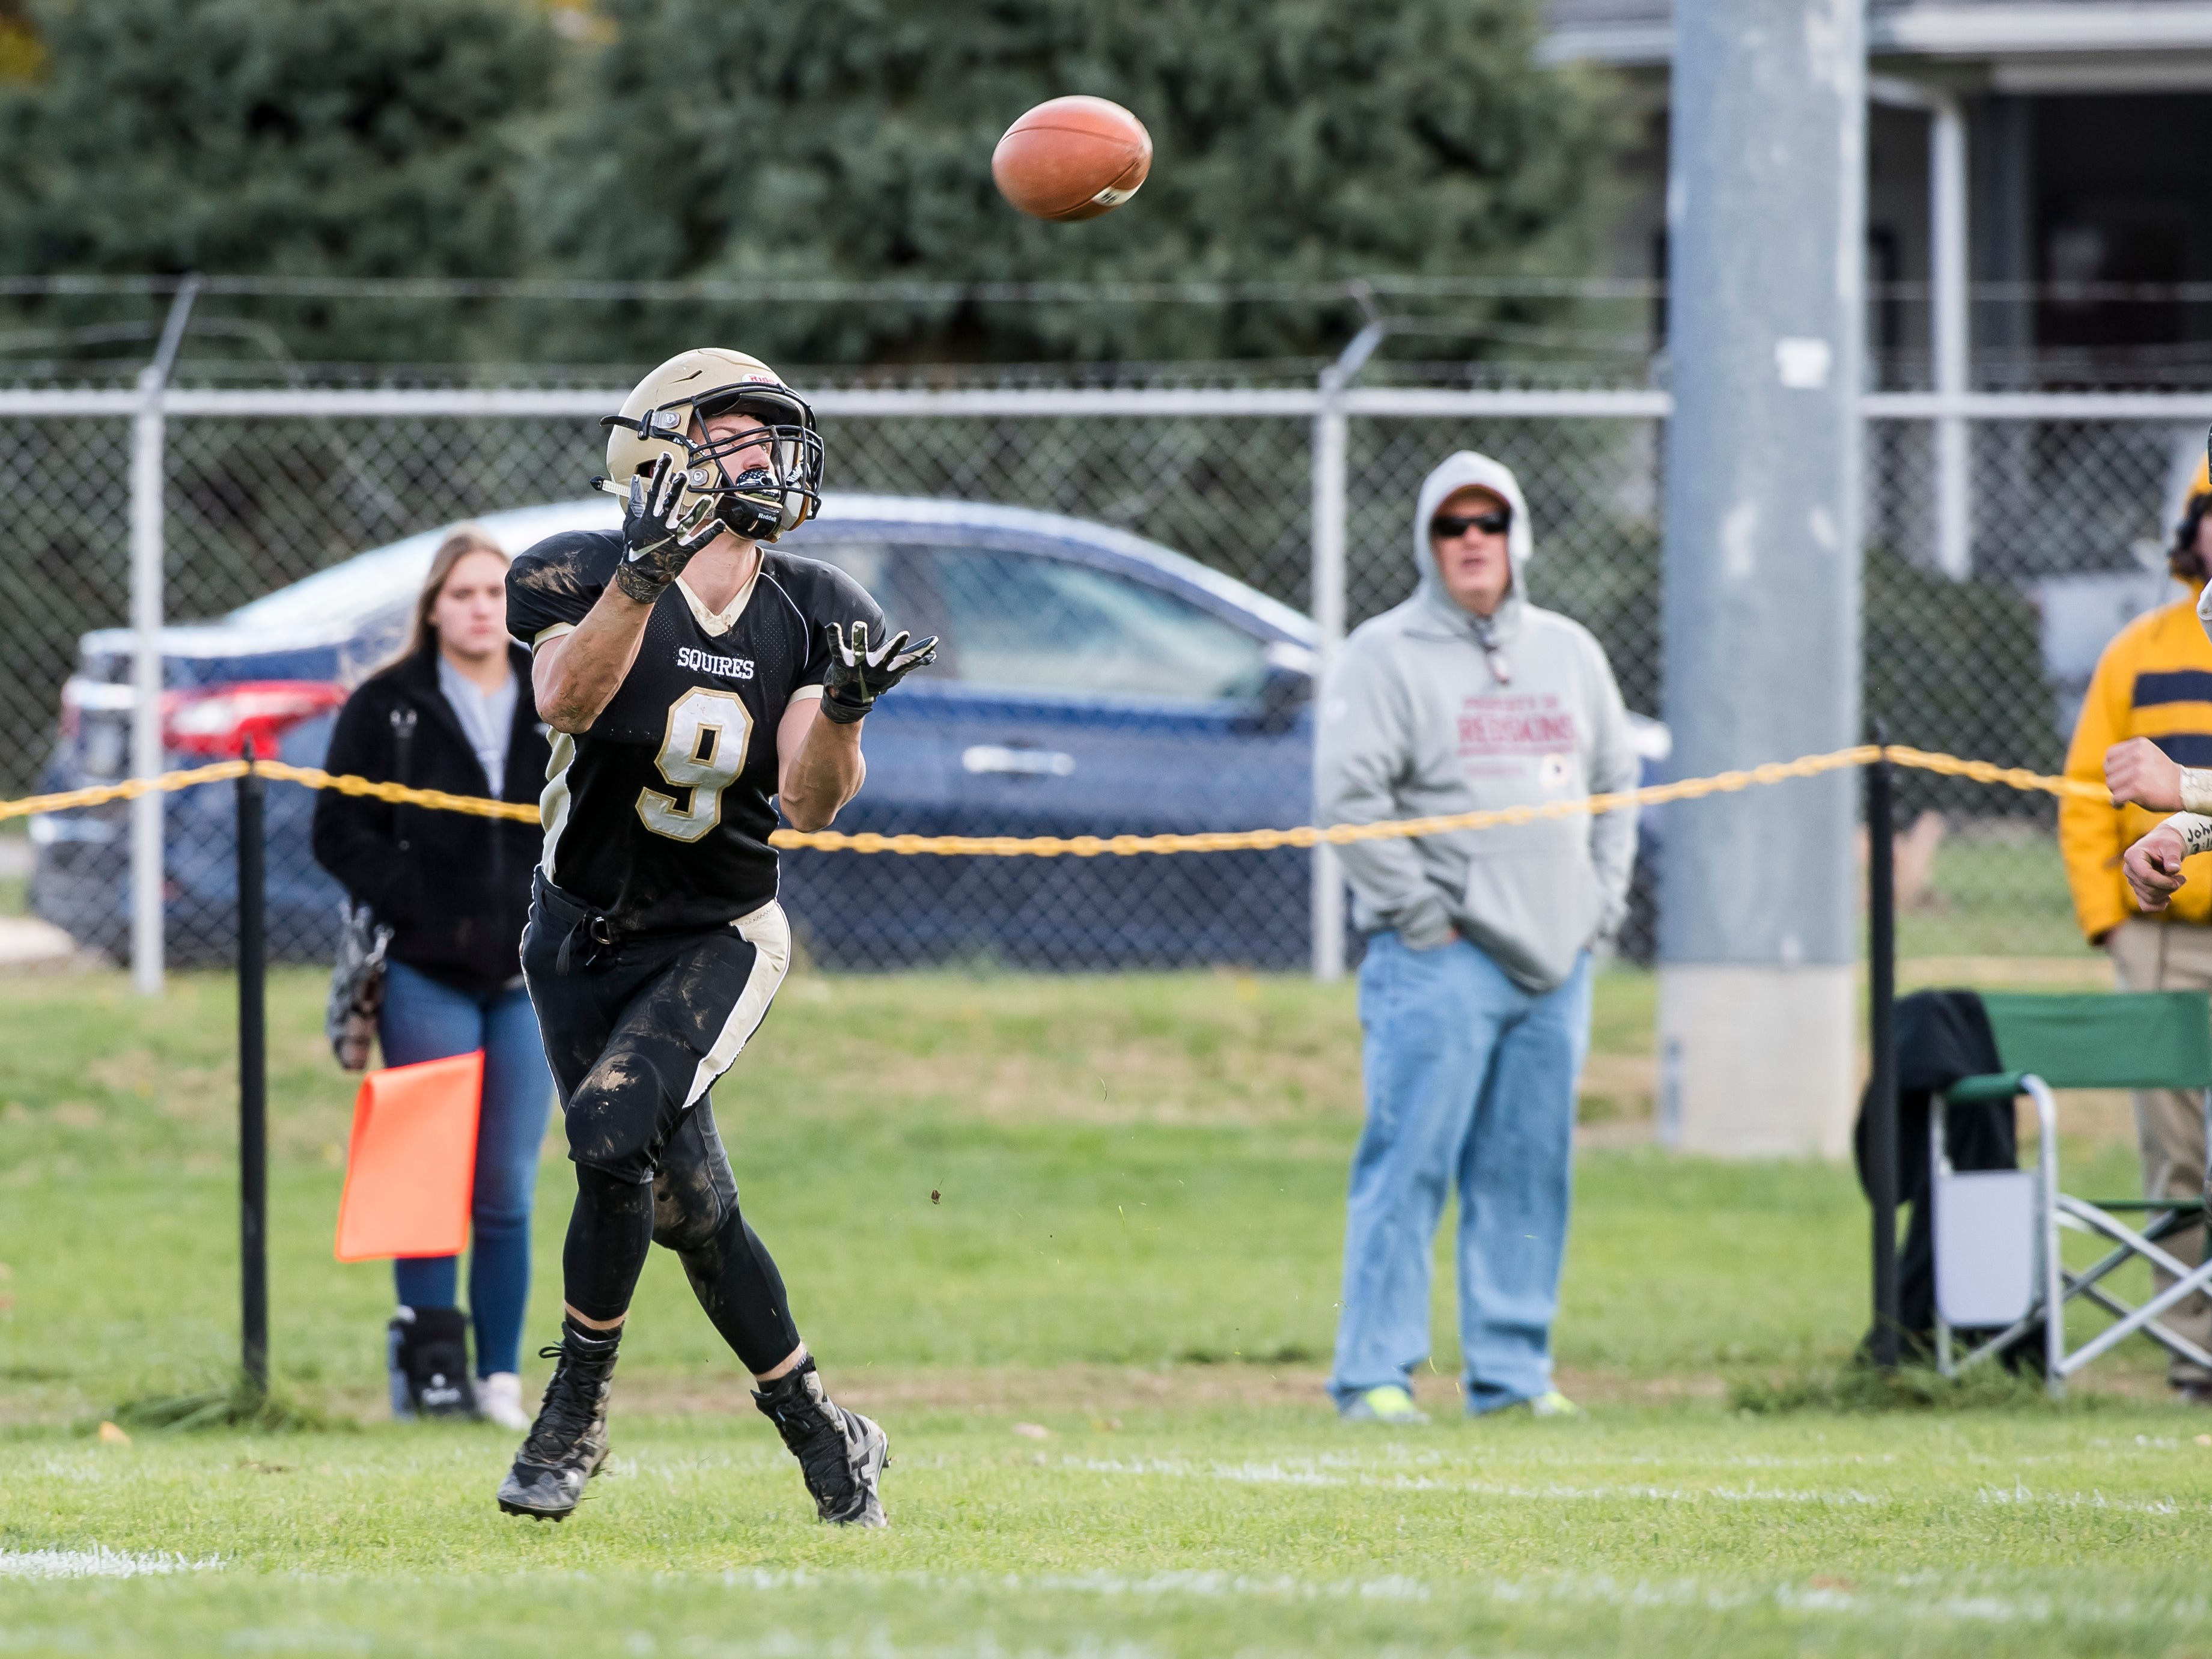 Delone Catholic's Logan Brown beats the defense to make a catch during a District III Class 2A semifinal game against Upper Dauphin on Saturday, November 3, 2018. The Squires won 48-23.